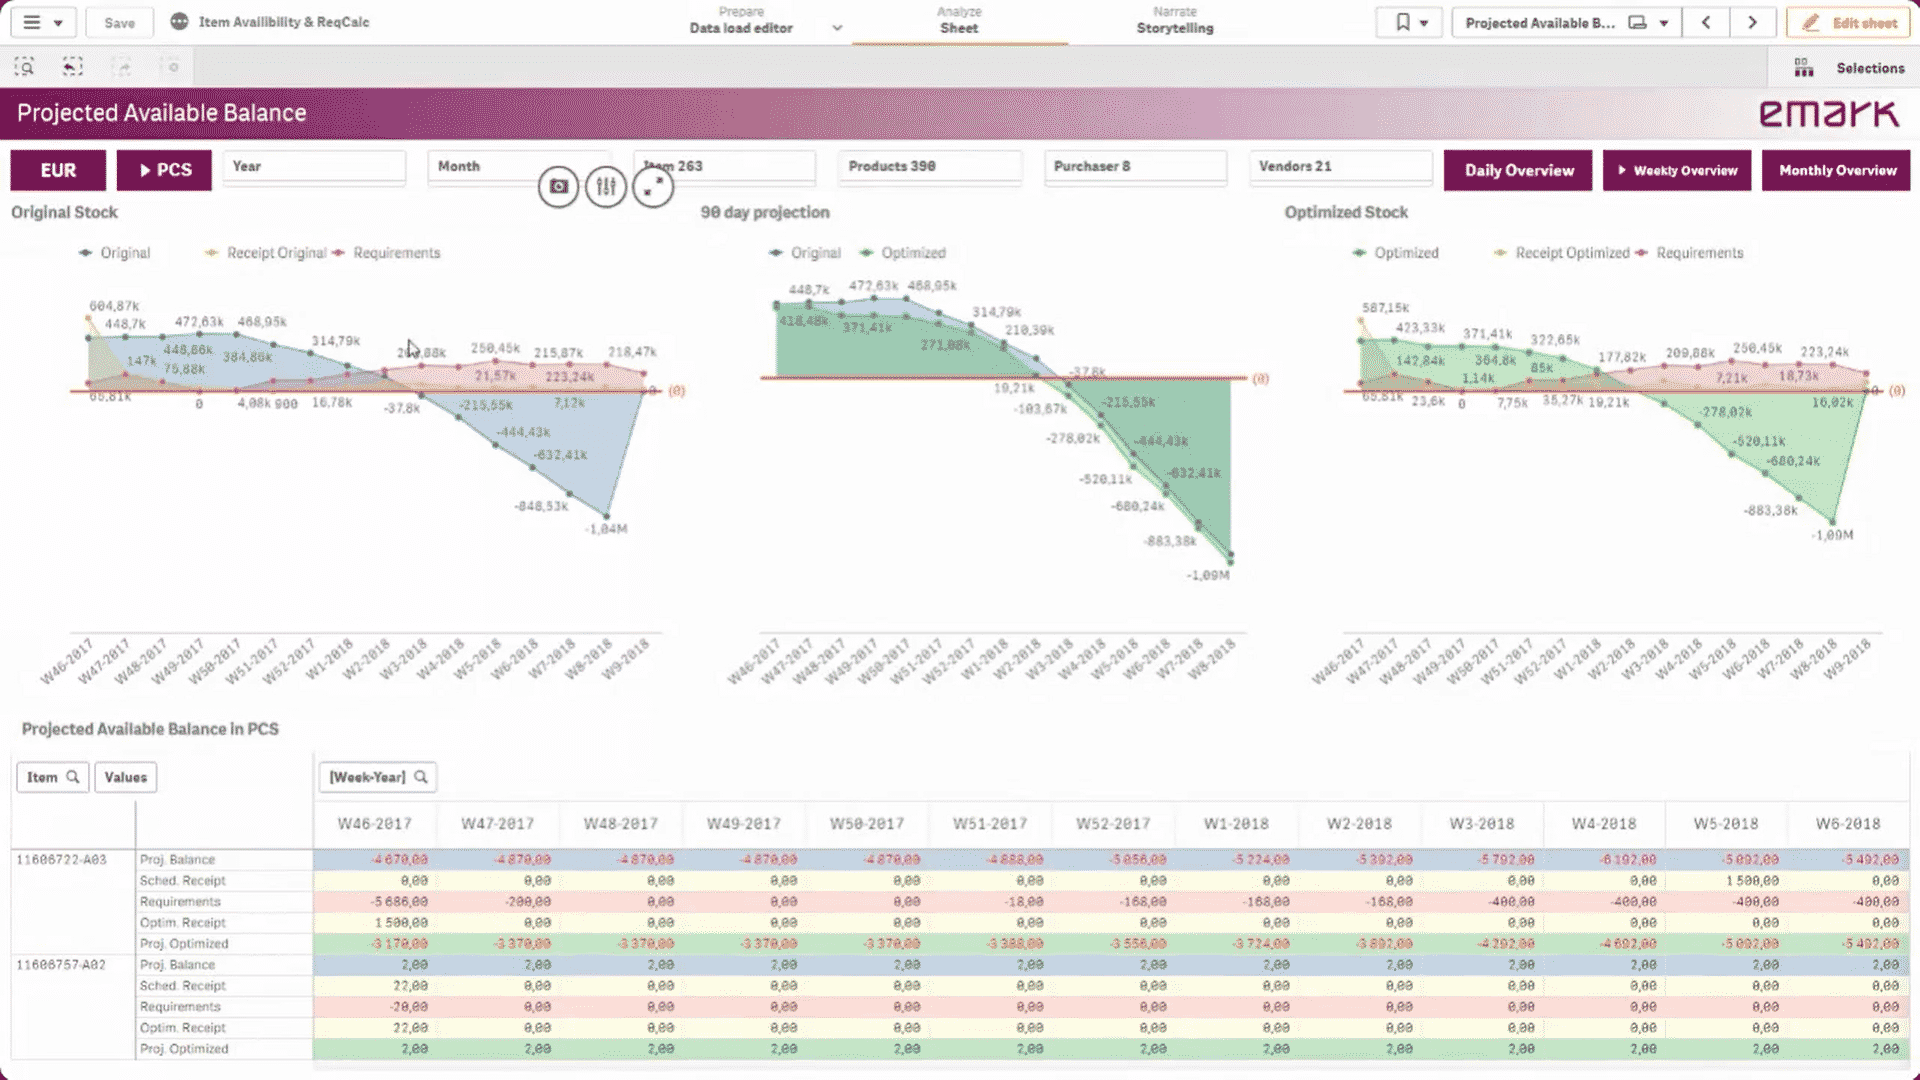 Projected available balance screenshot - Projection of material availability and production planning